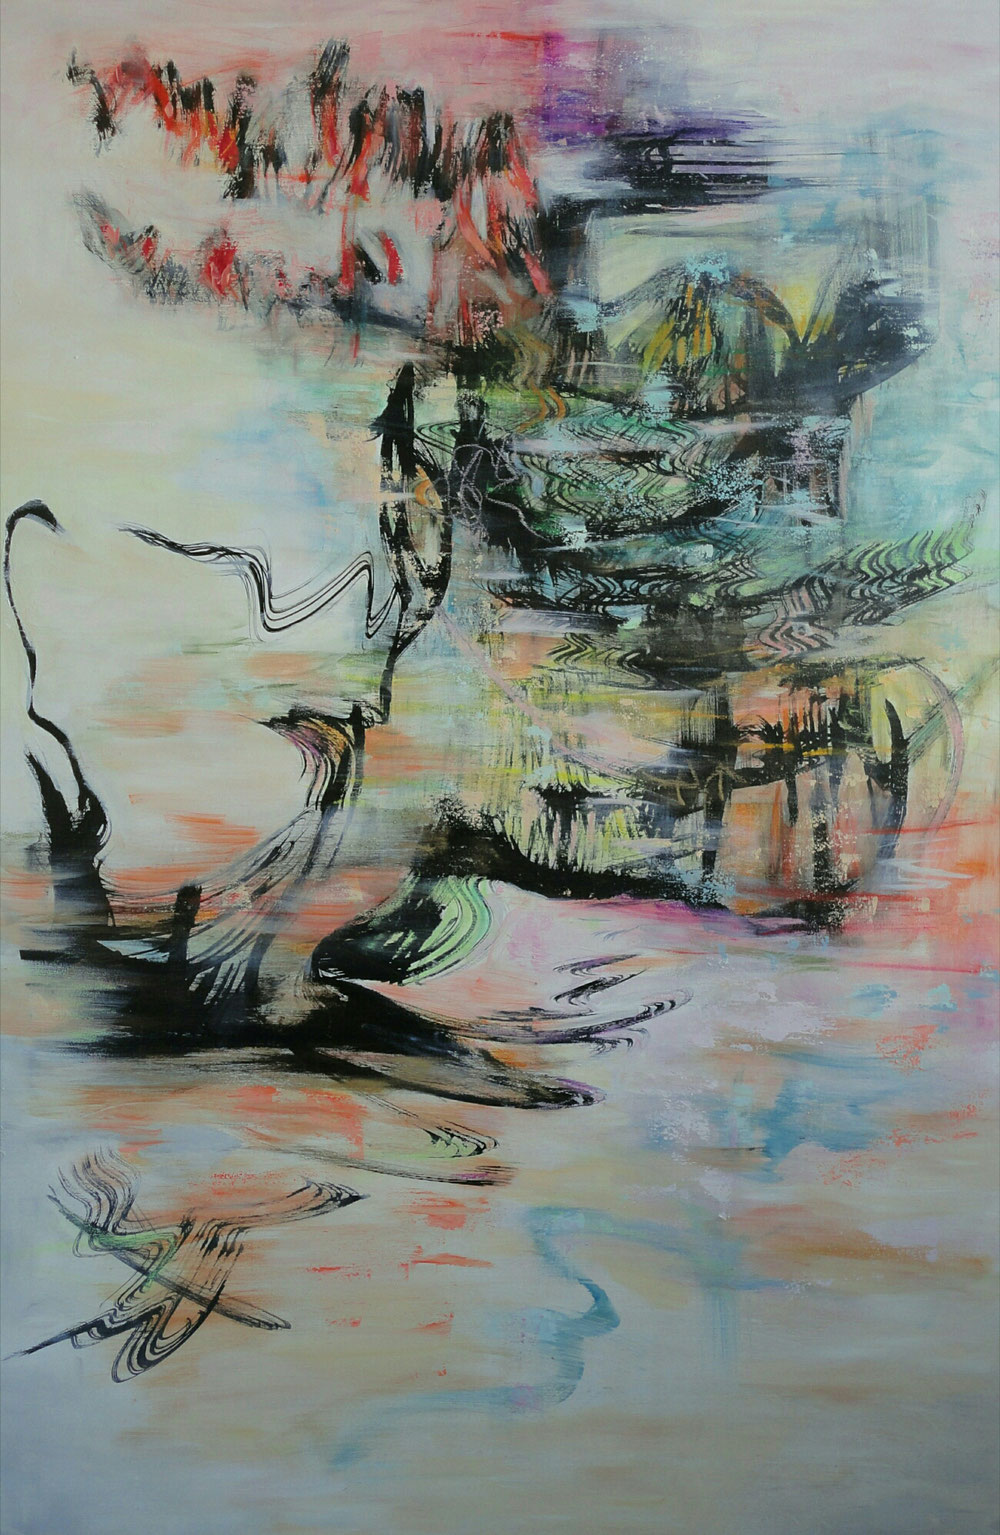 Kingdom of the Dragonfly, 120 x 80, mixed media on canvas